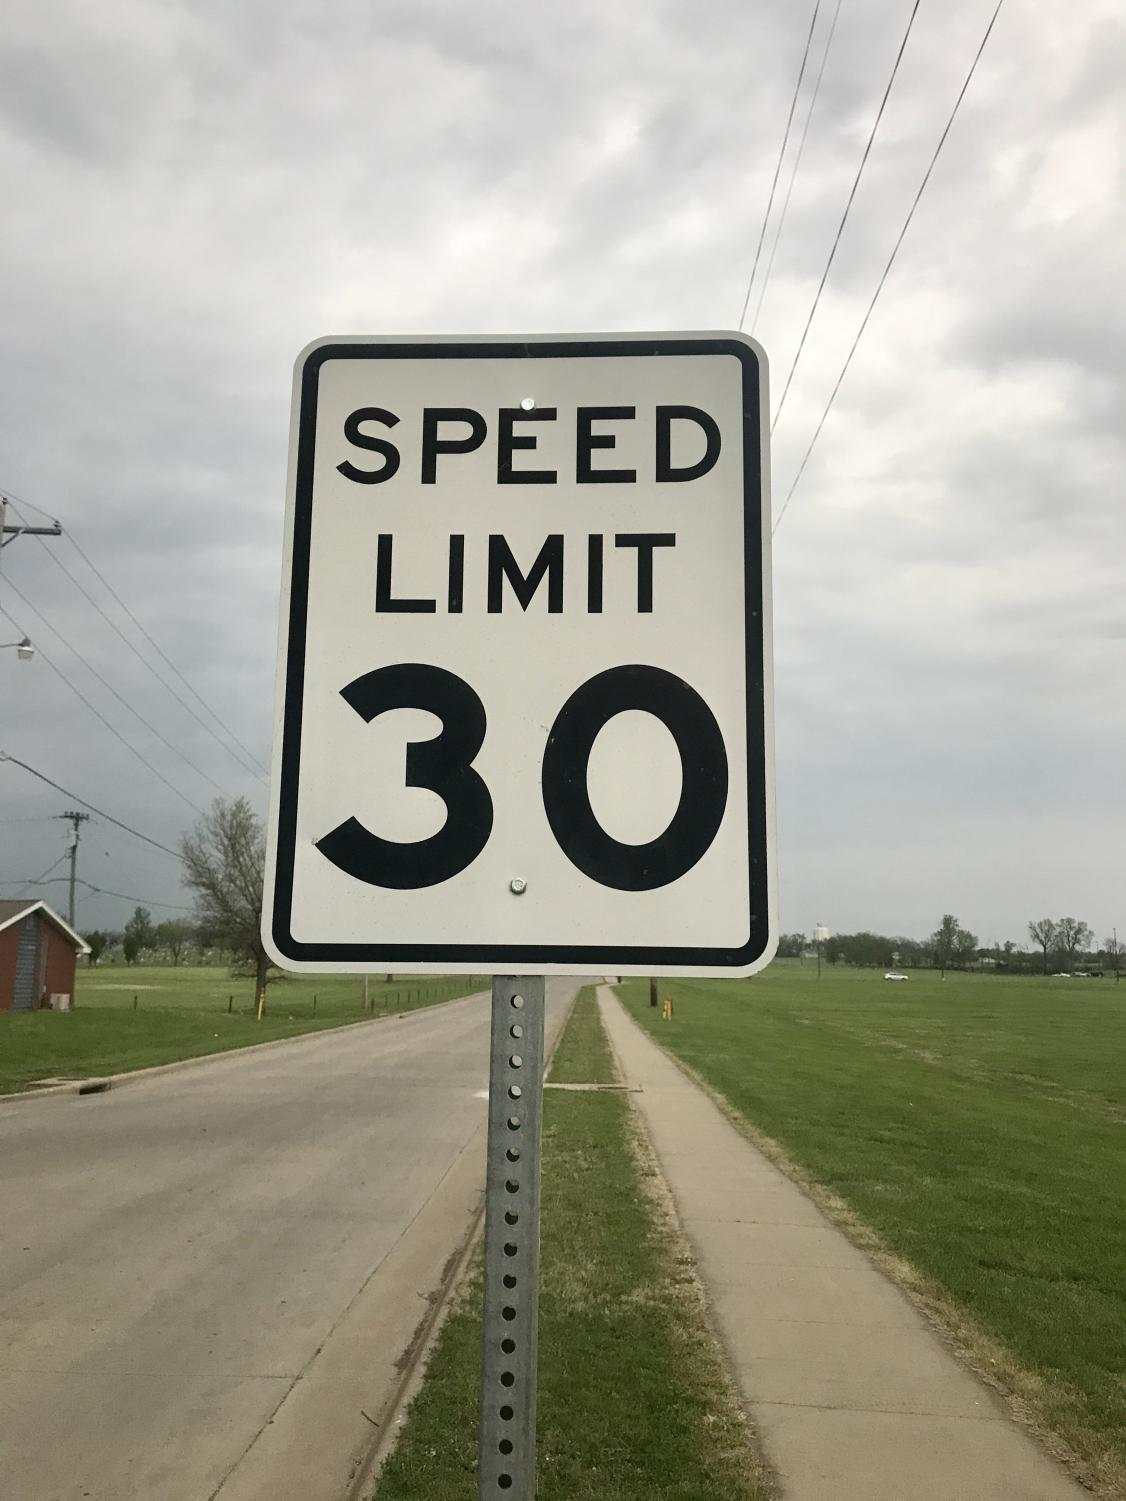 The 30 miles per hour speed limit on Cottonwood is to ensure the safety of golf cart riders so they can legally ride on the road.